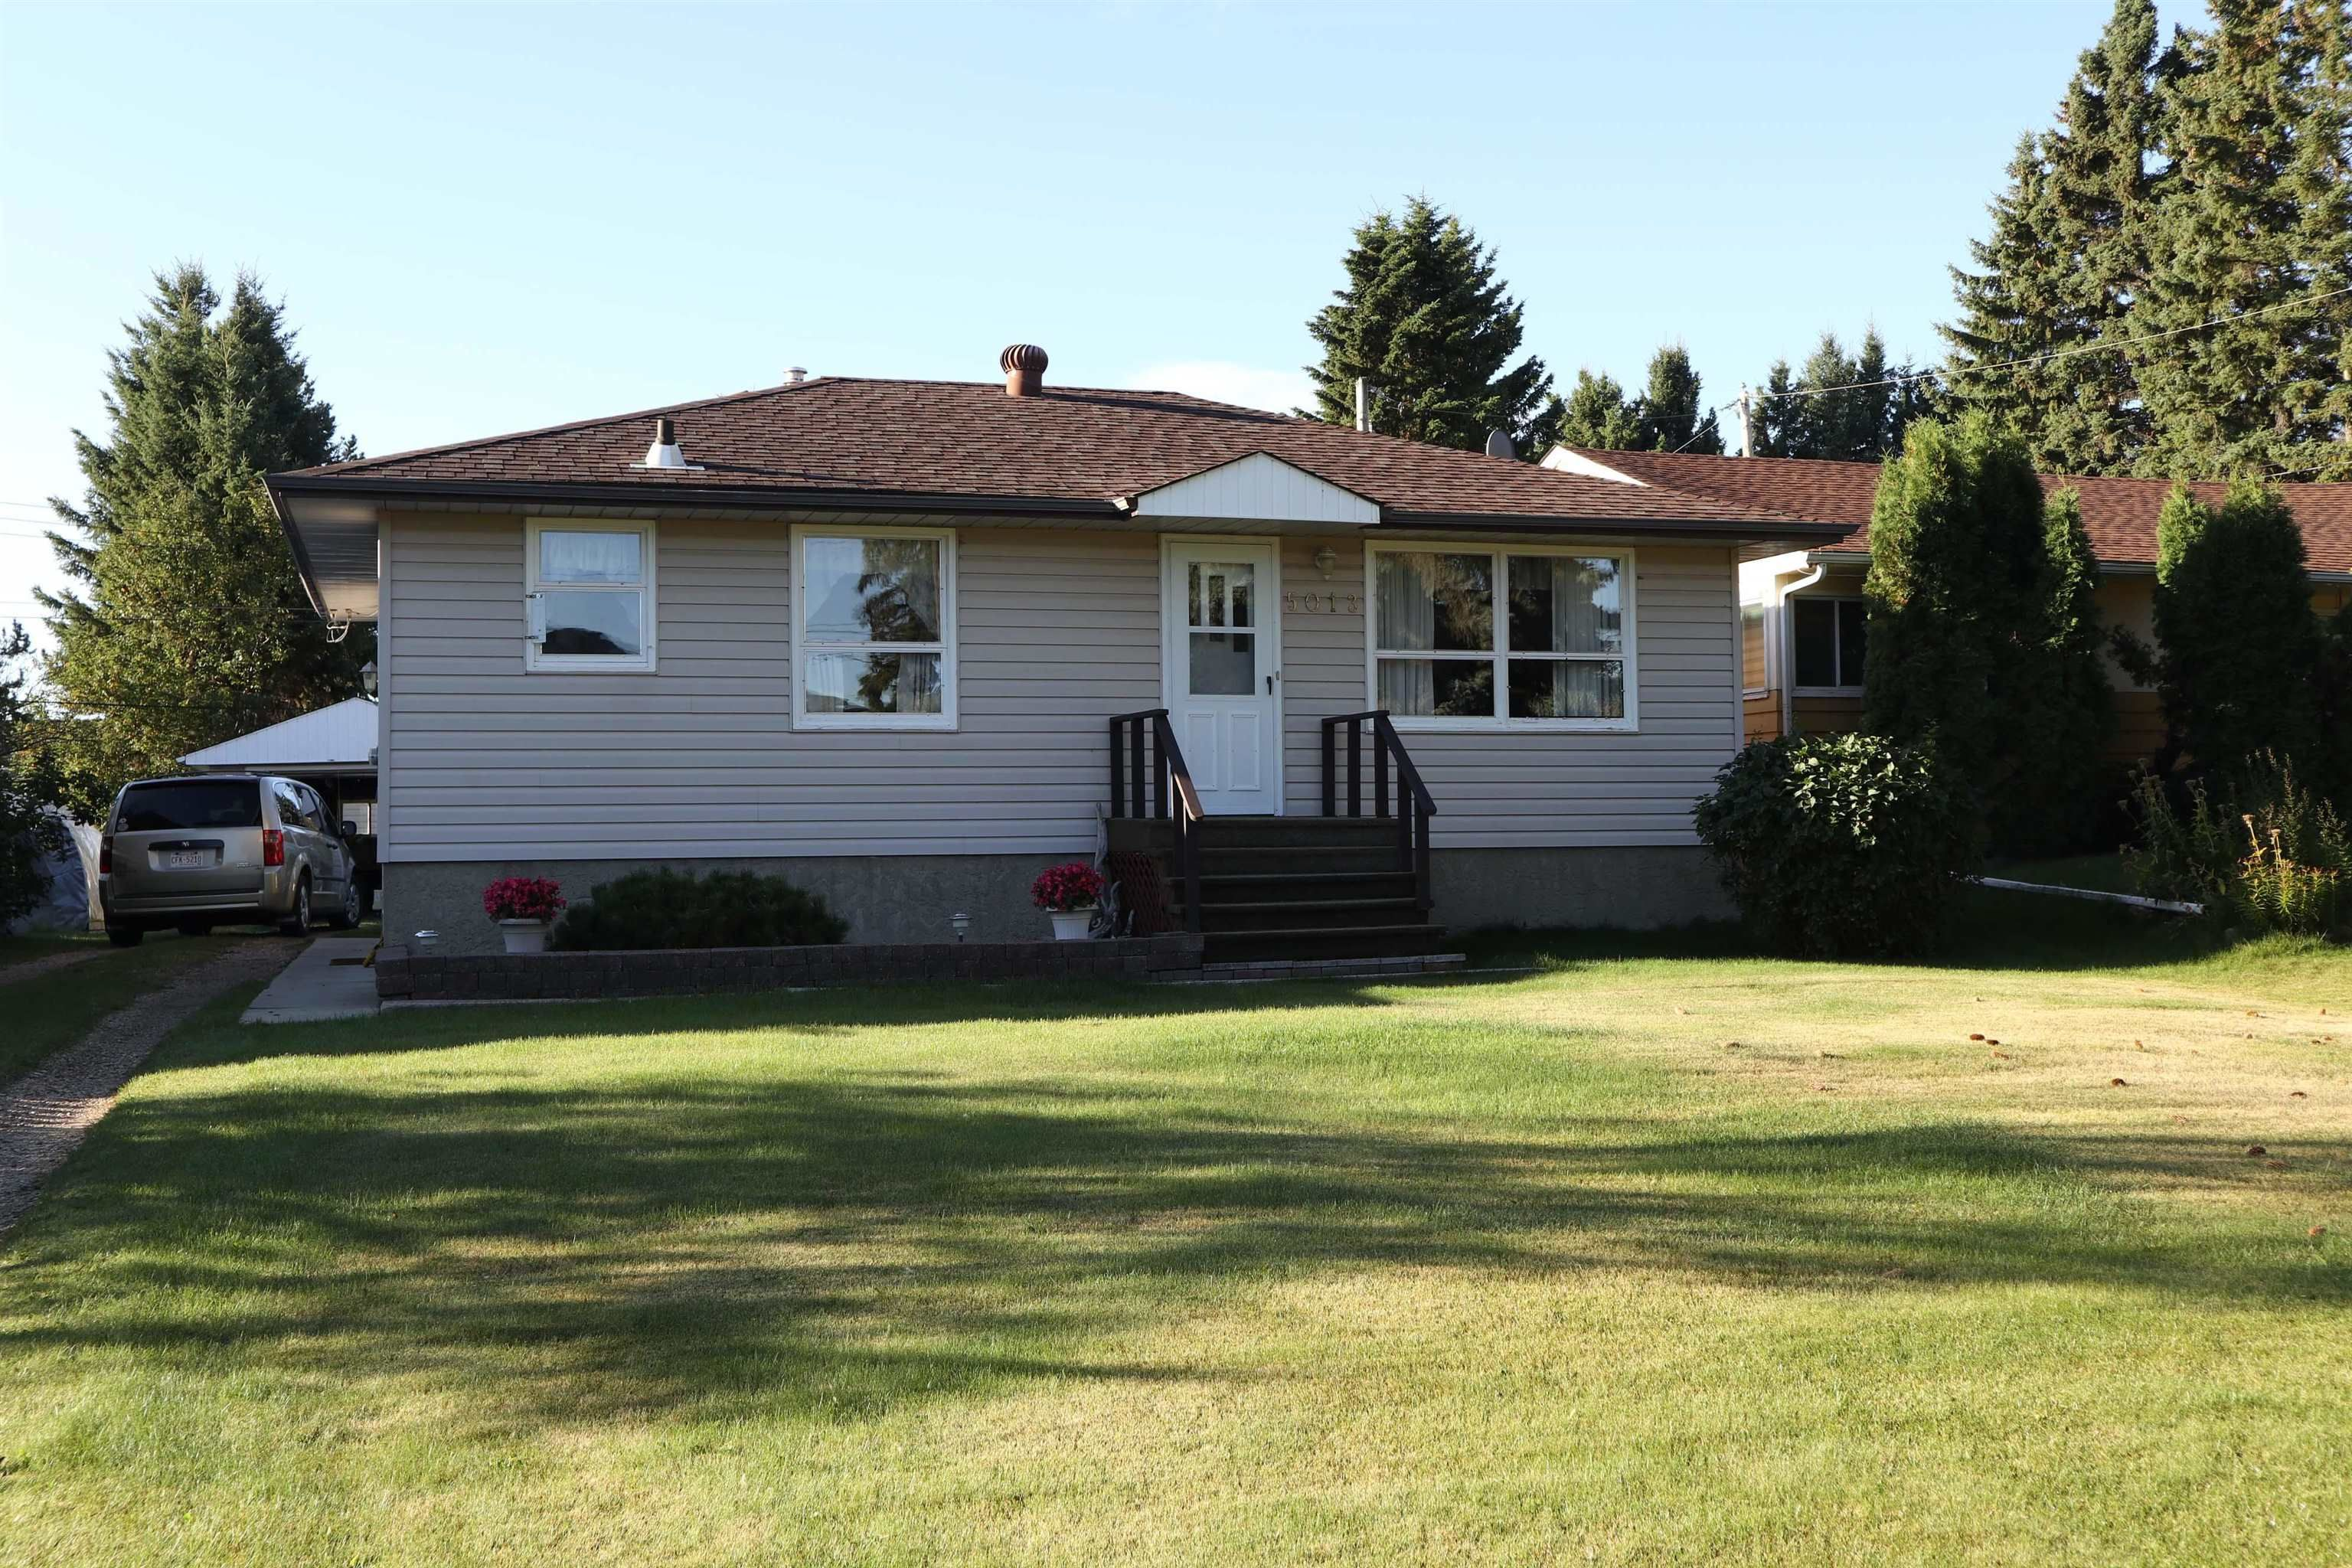 Main Photo: 5013 48 Avenue: Thorsby House for sale : MLS®# E4265688